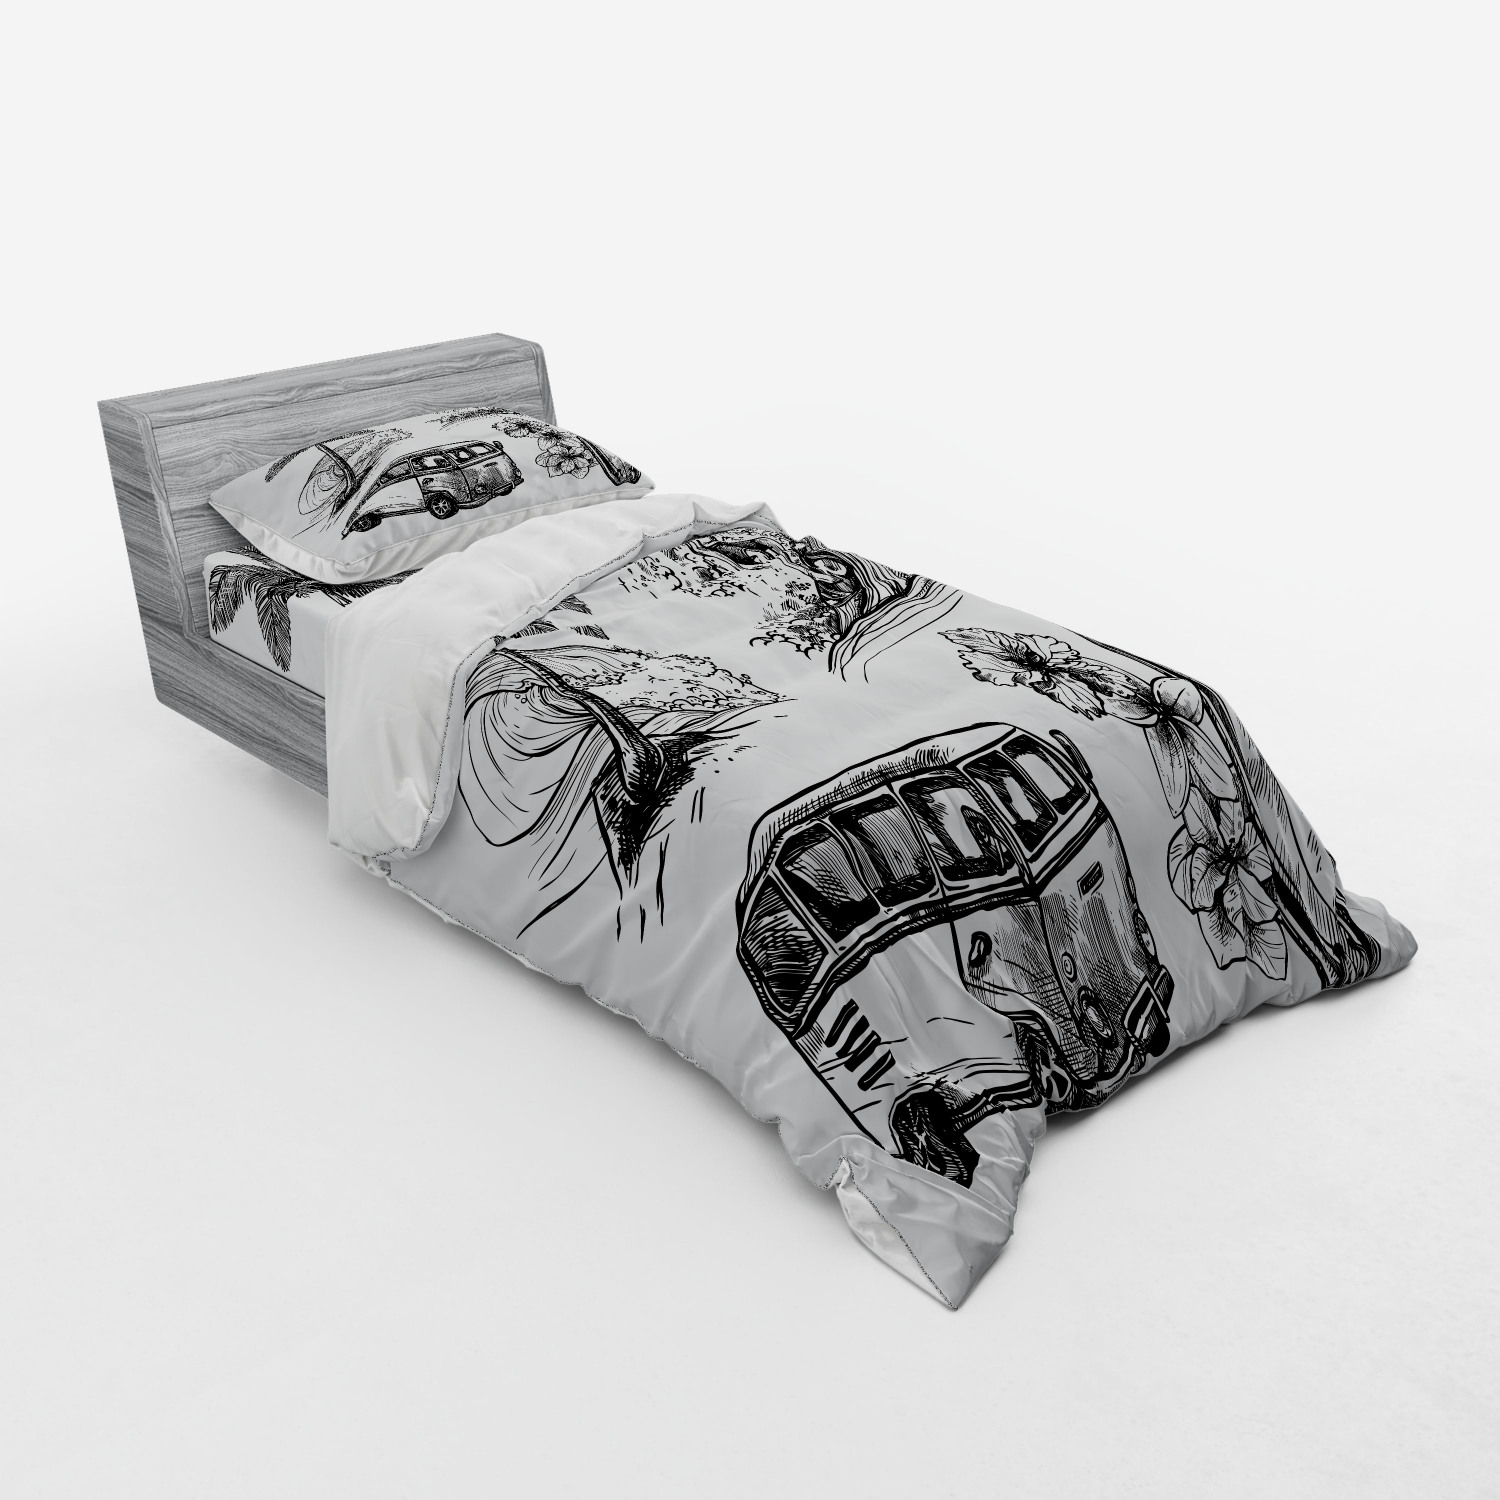 thumbnail 201 - Ambesonne Black White Art Bedding Set Duvet Cover Sham Fitted Sheet in 3 Sizes